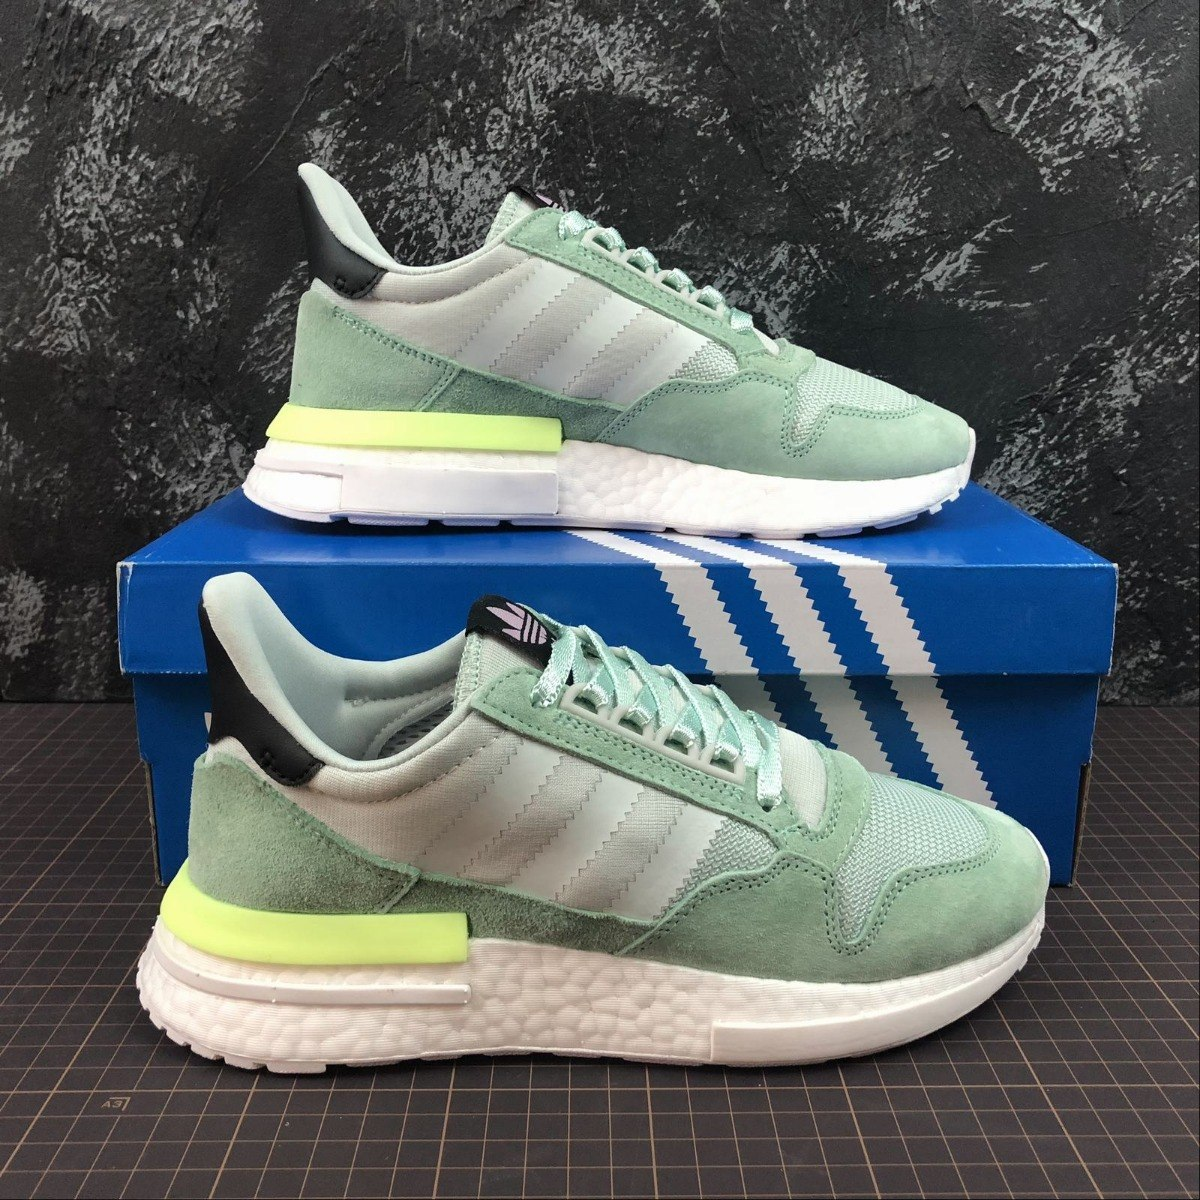 adidas zx 500 rm mujer